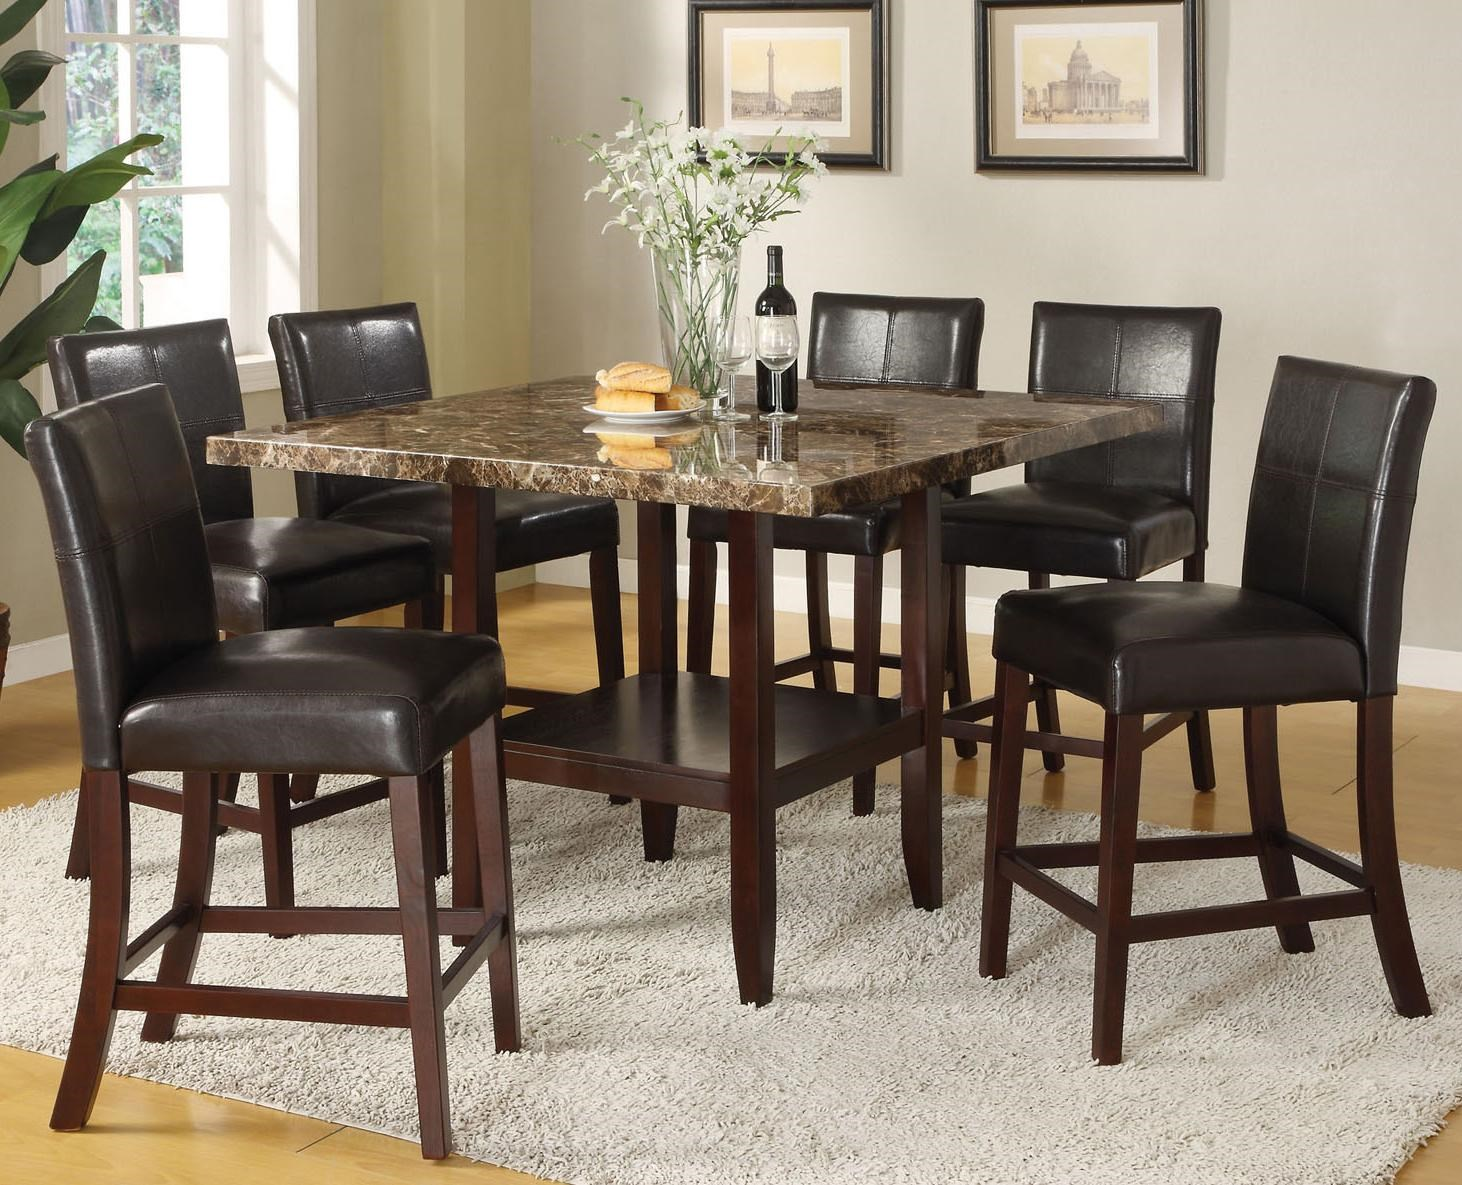 7 piece counter height dining set gray acme furniture idris7 piece counter height dining set idris with square